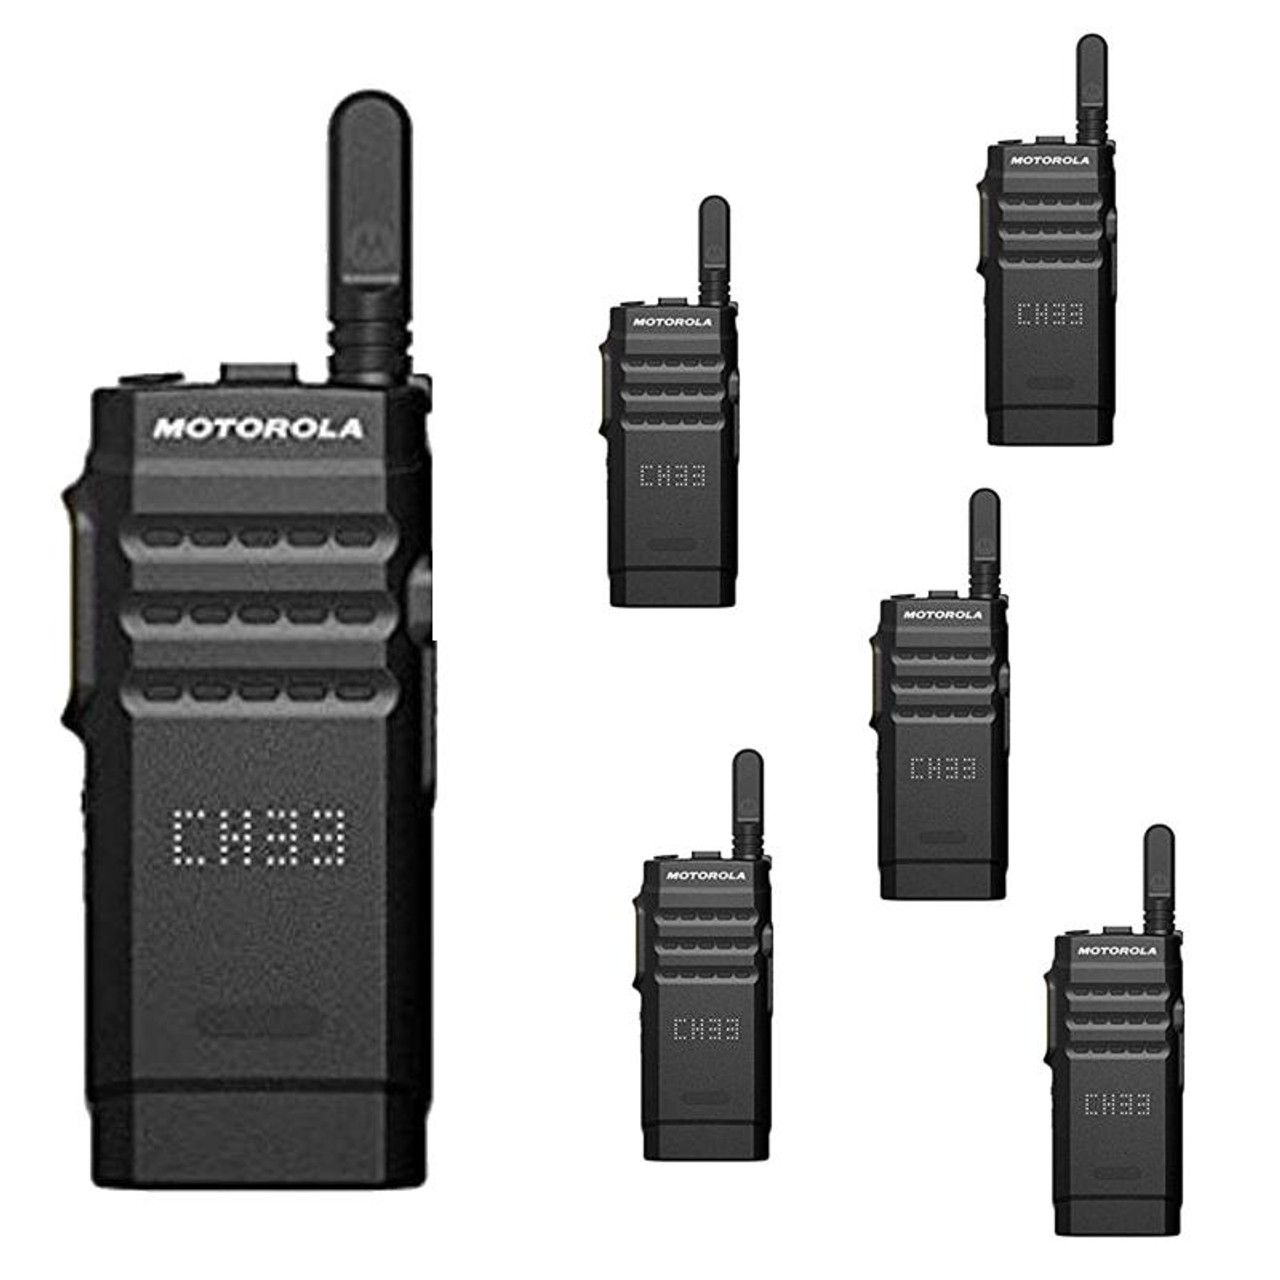 6c35c0a4a Six Pack of Motorola SL300 Analog   Digital Two Way Commercial Radios UHF  99 ChannelDisplay DMR - AAH88QCPC9JA2AN